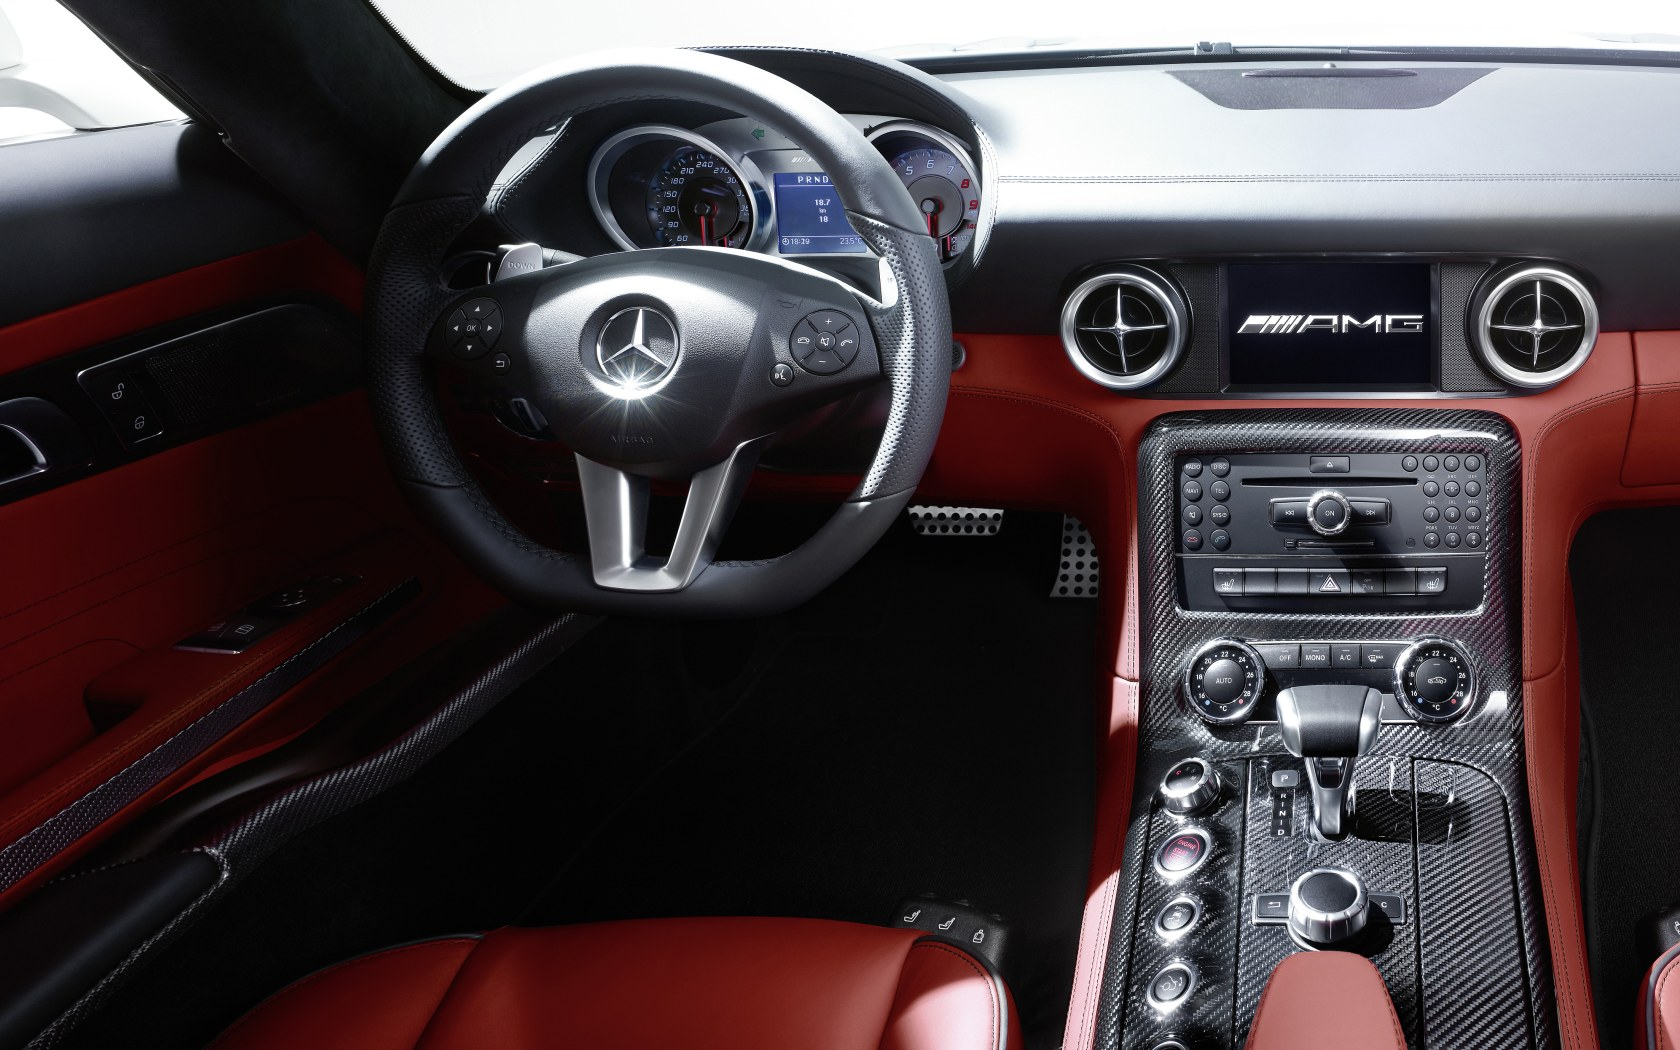 2010 SLS AMG rot Interieur 1 - Mercedes-Benz Wallpaper - MB-Wallpaper.de